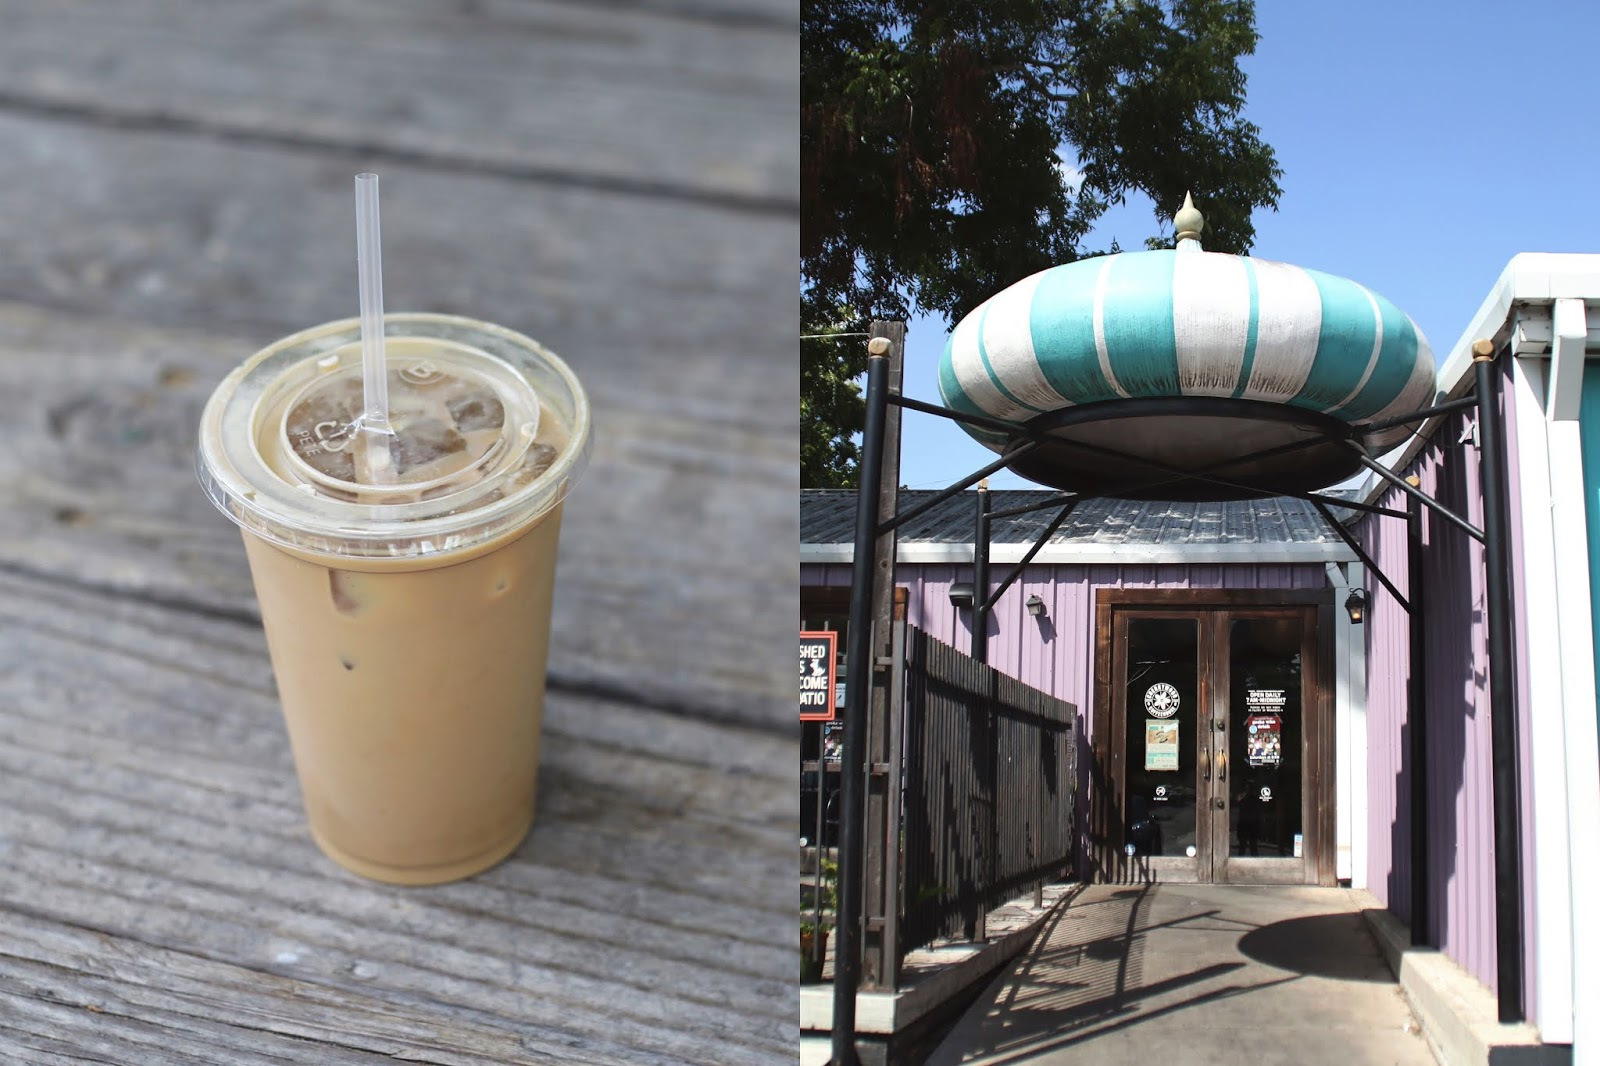 Cherrywood Coffee Austin, Iced Coffee, Cozy Coffee Shop, Coffee Shops Vibe